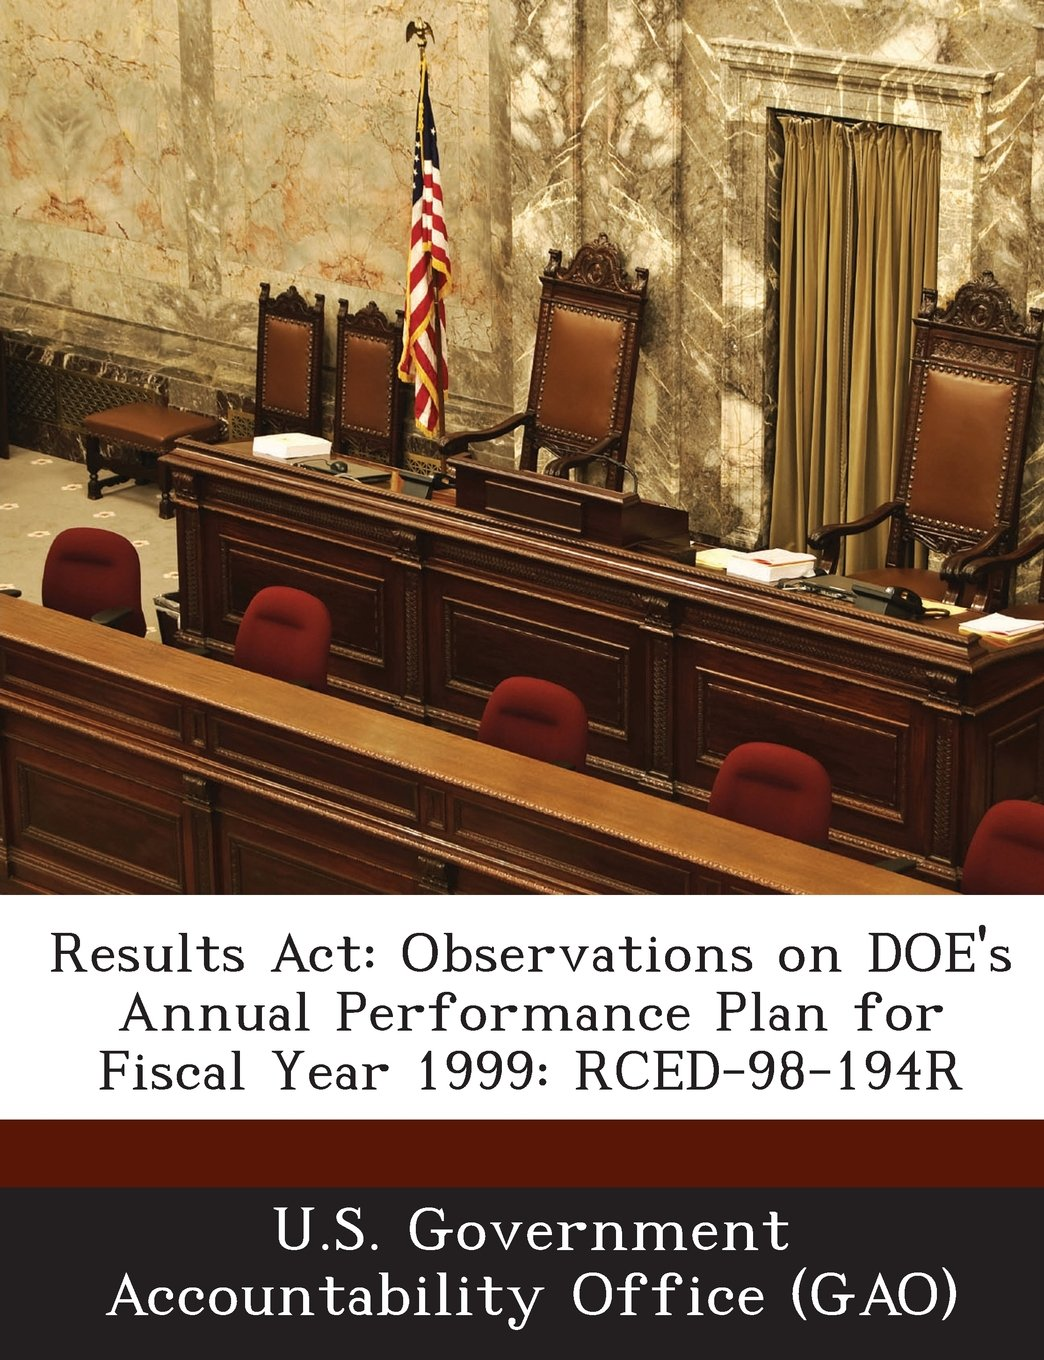 Download Results ACT: Observations on Doe's Annual Performance Plan for Fiscal Year 1999: Rced-98-194r pdf